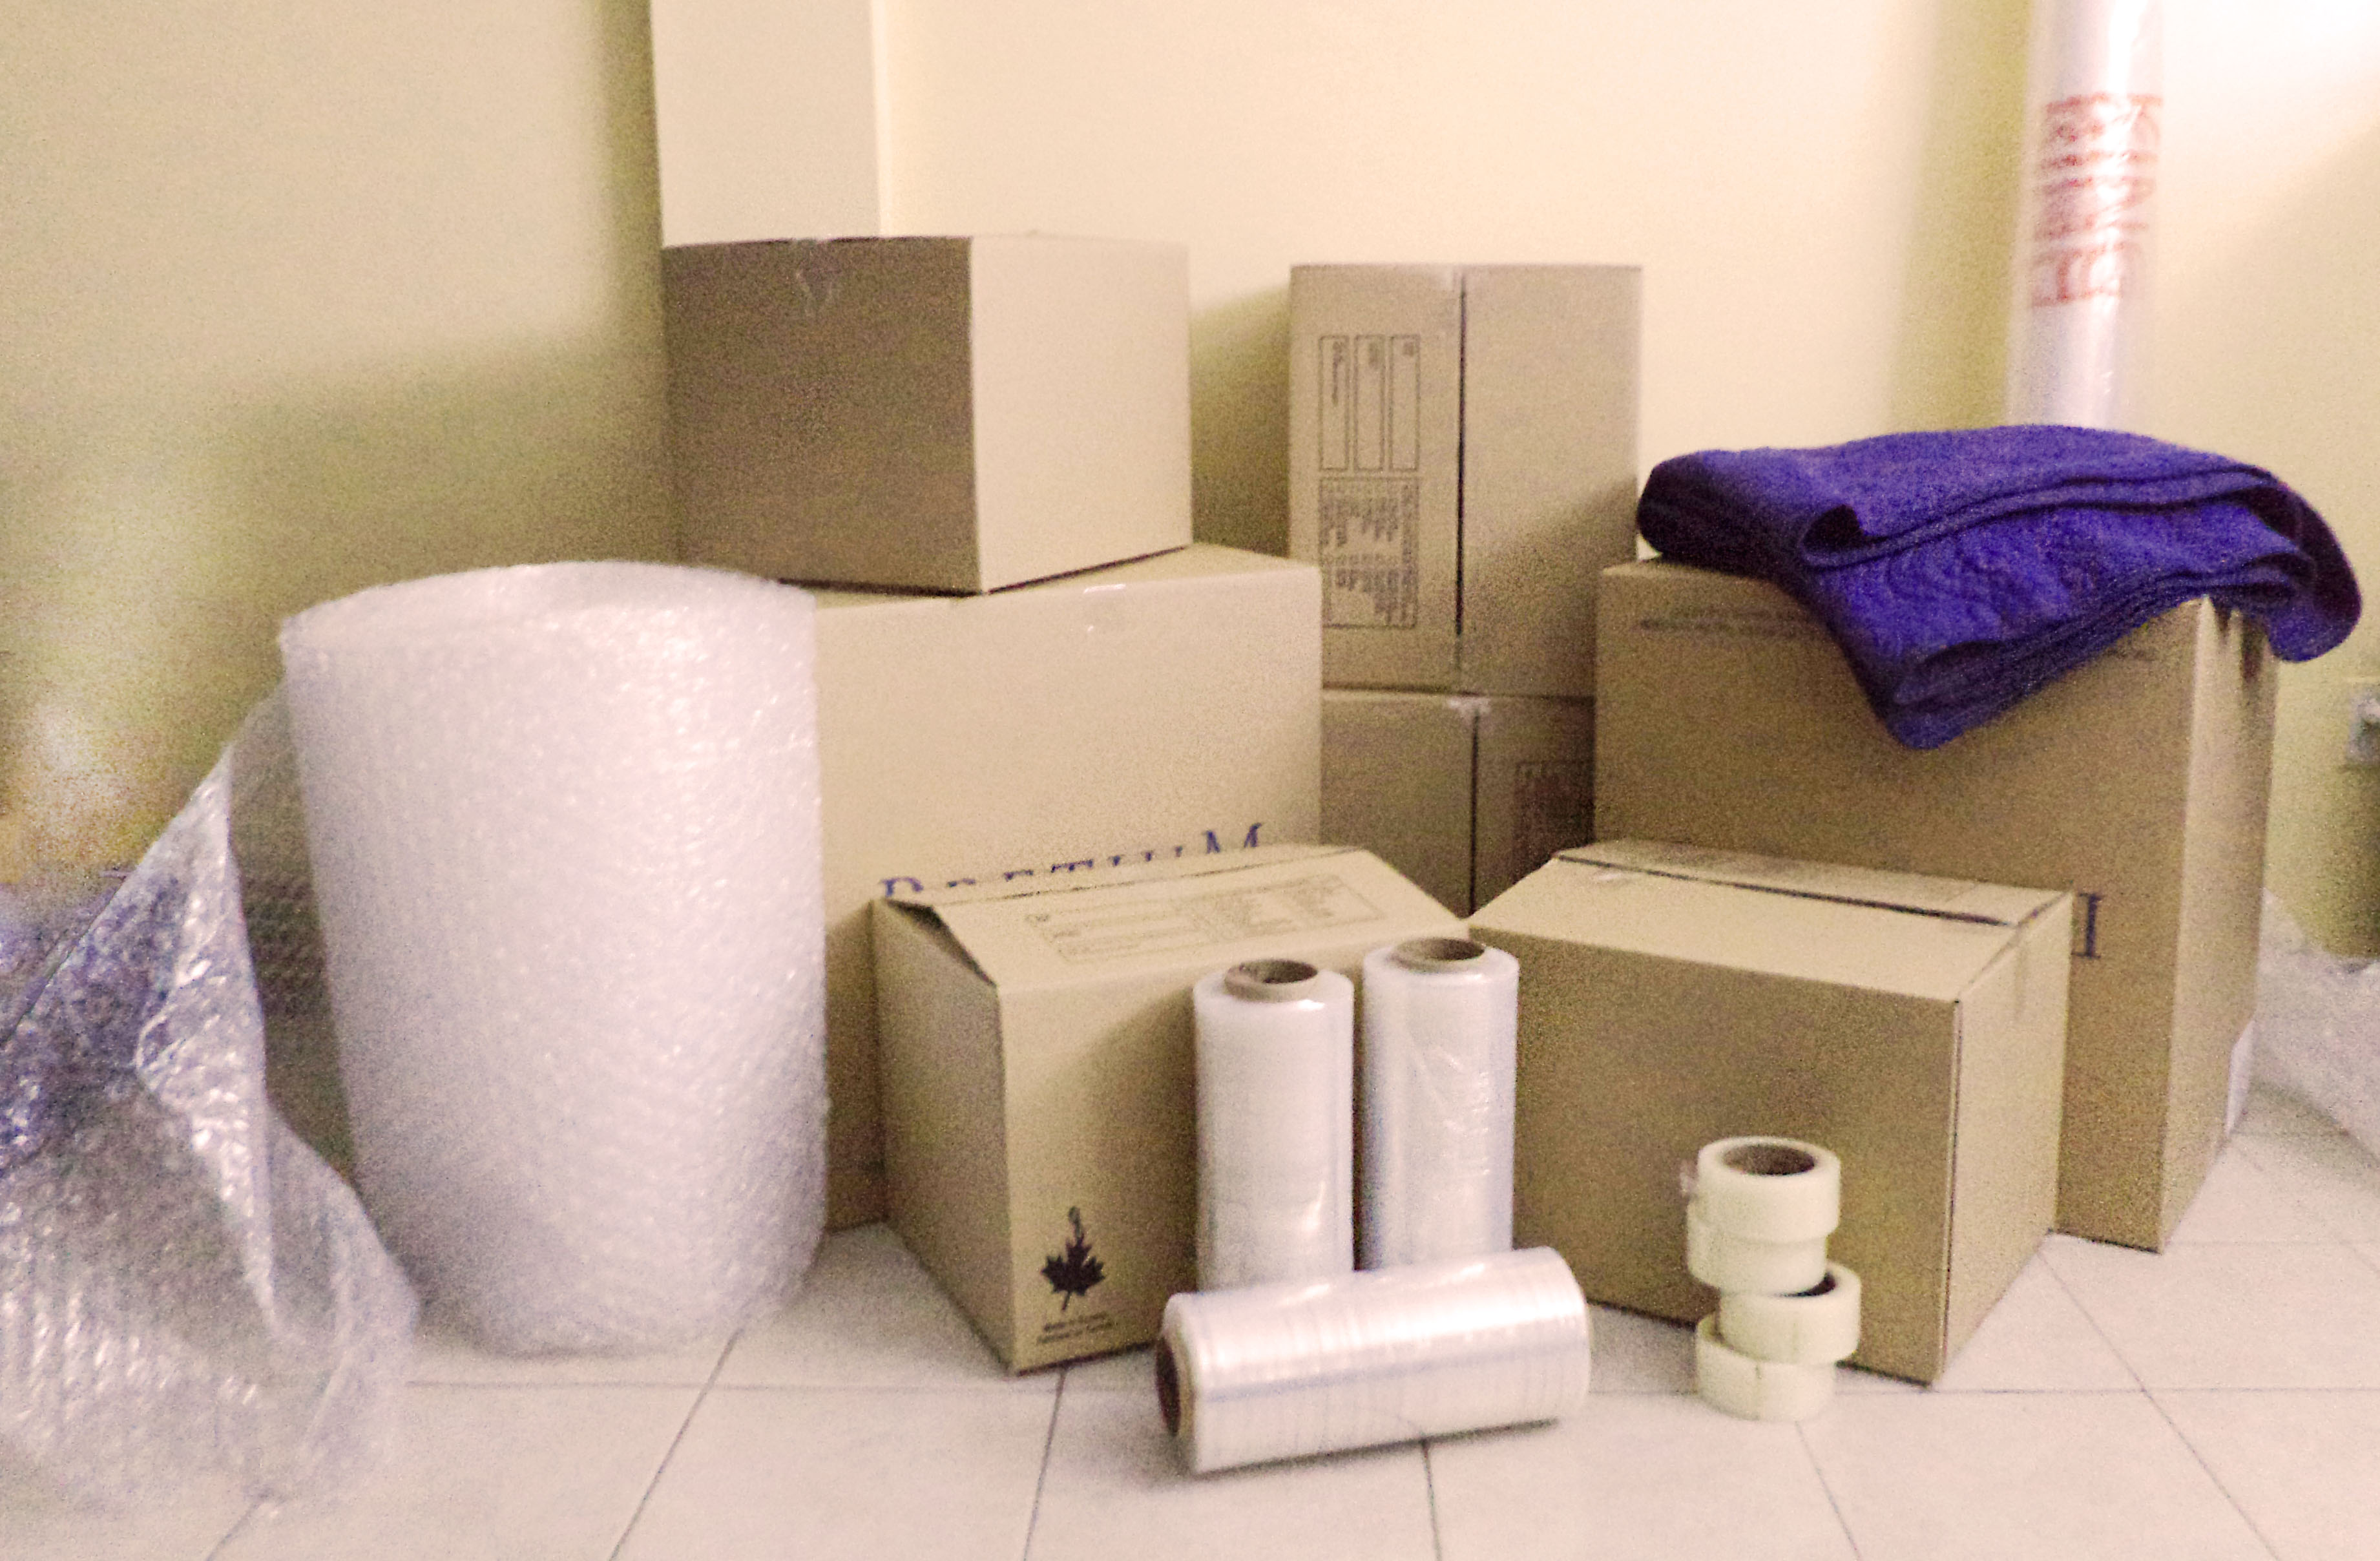 Moving Supplies Can Make Or Break A Move